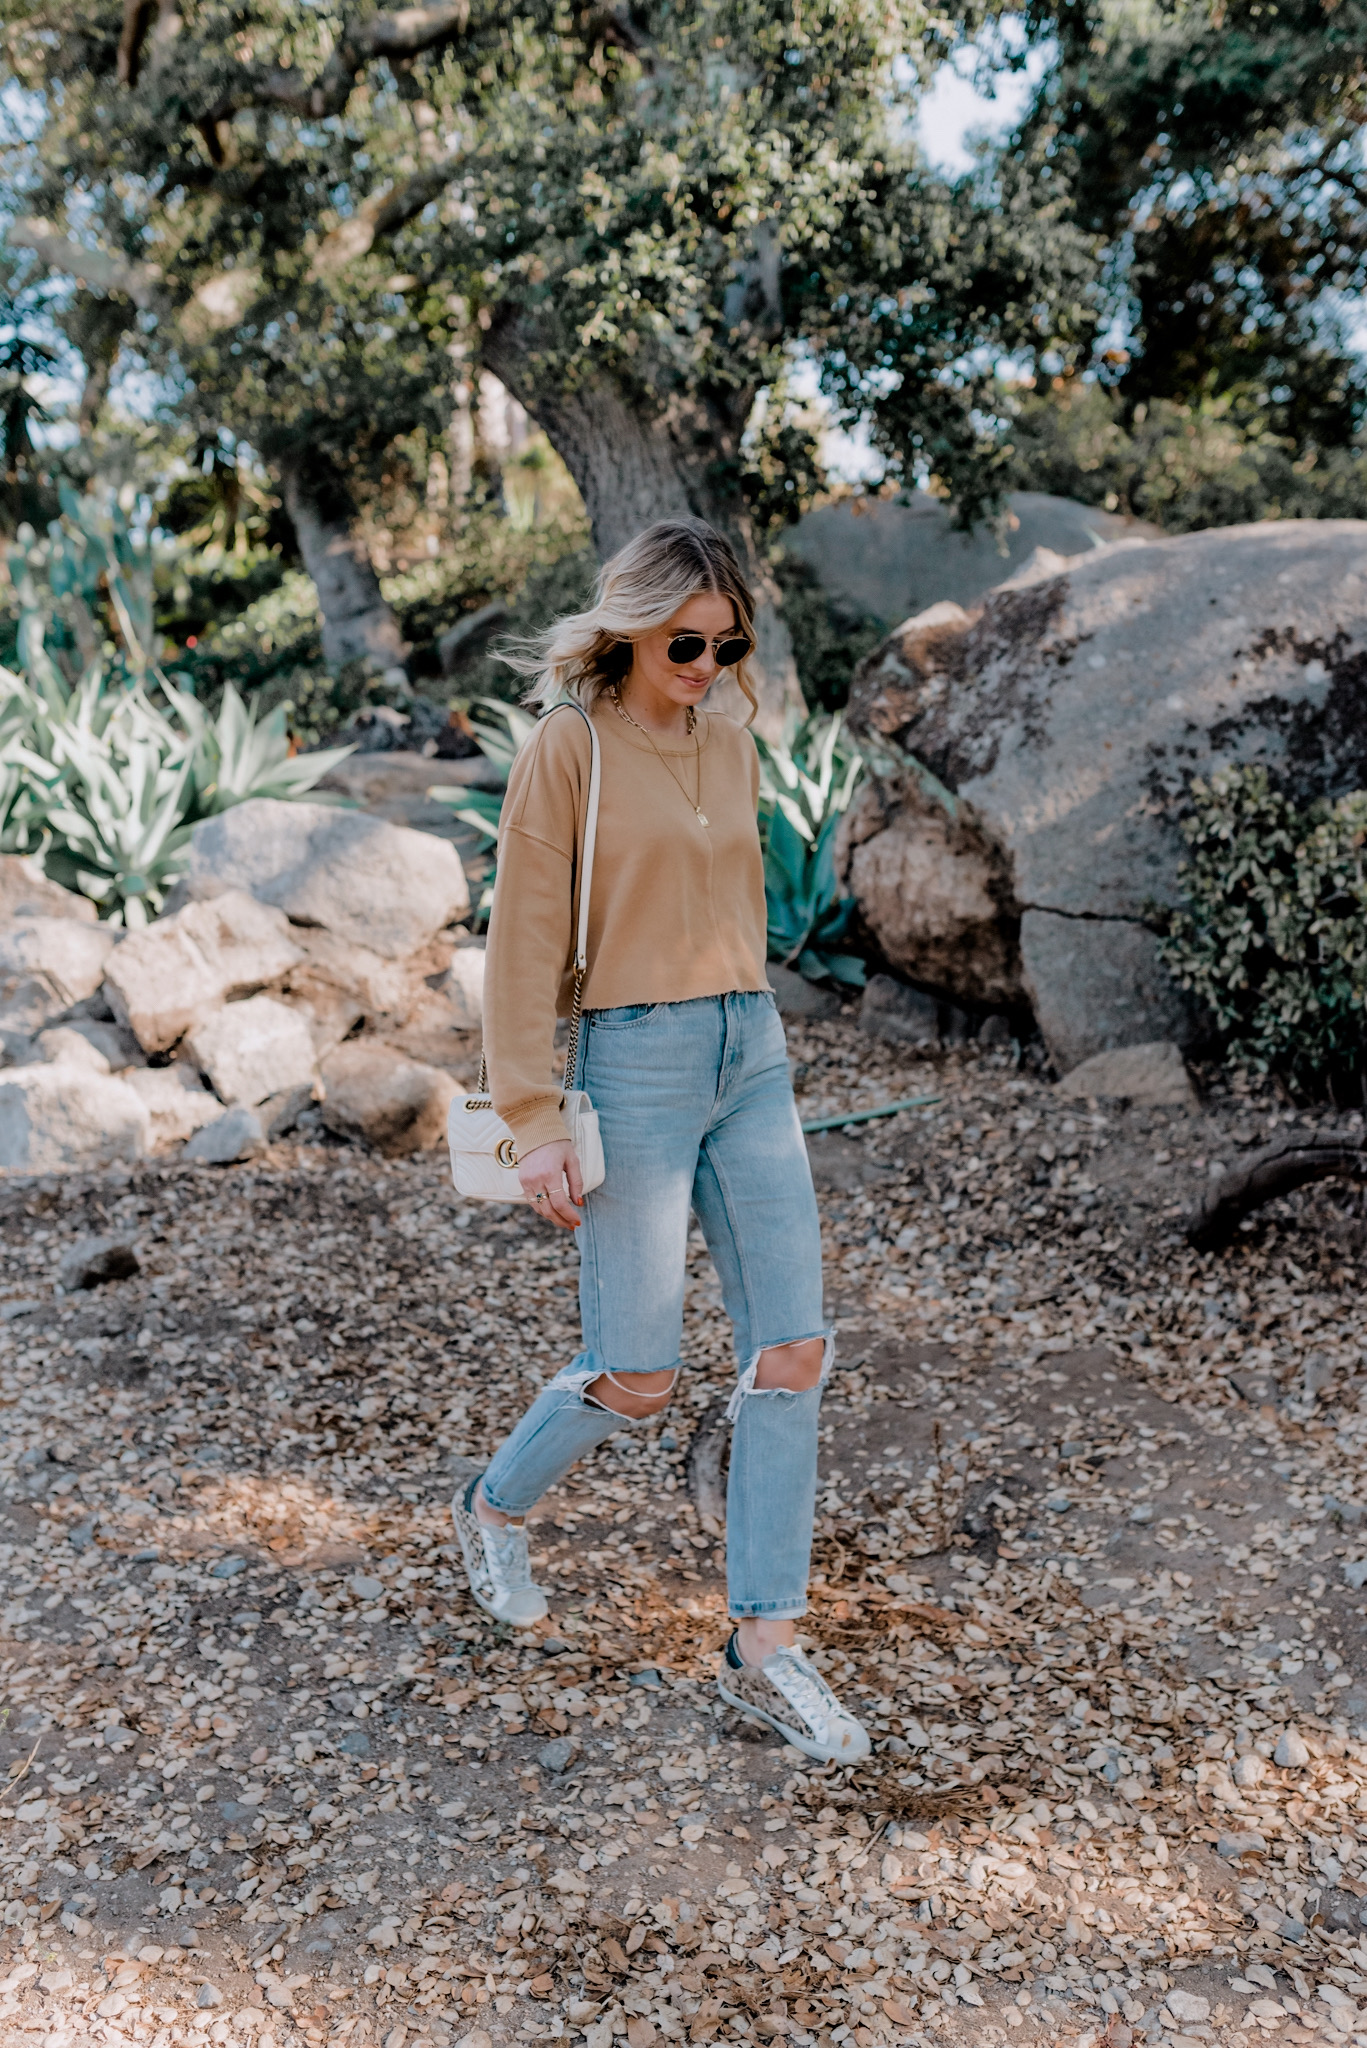 Casual Jackets by popular San Diego fashion blog, Navy Grace: image of a woman wearing a Top Shop Double Ripped Mom Jeans,GOLDEN GOOSE Beige & Brown Horsy Superstar Sneakers, JCPenney Arizona Juniors Womens Crew Neck Long Sleeve Sweatshirt,Small Matelassé Leather Shoulder Bag, and Ray-Ban 51mm Aviator Sunglasses.